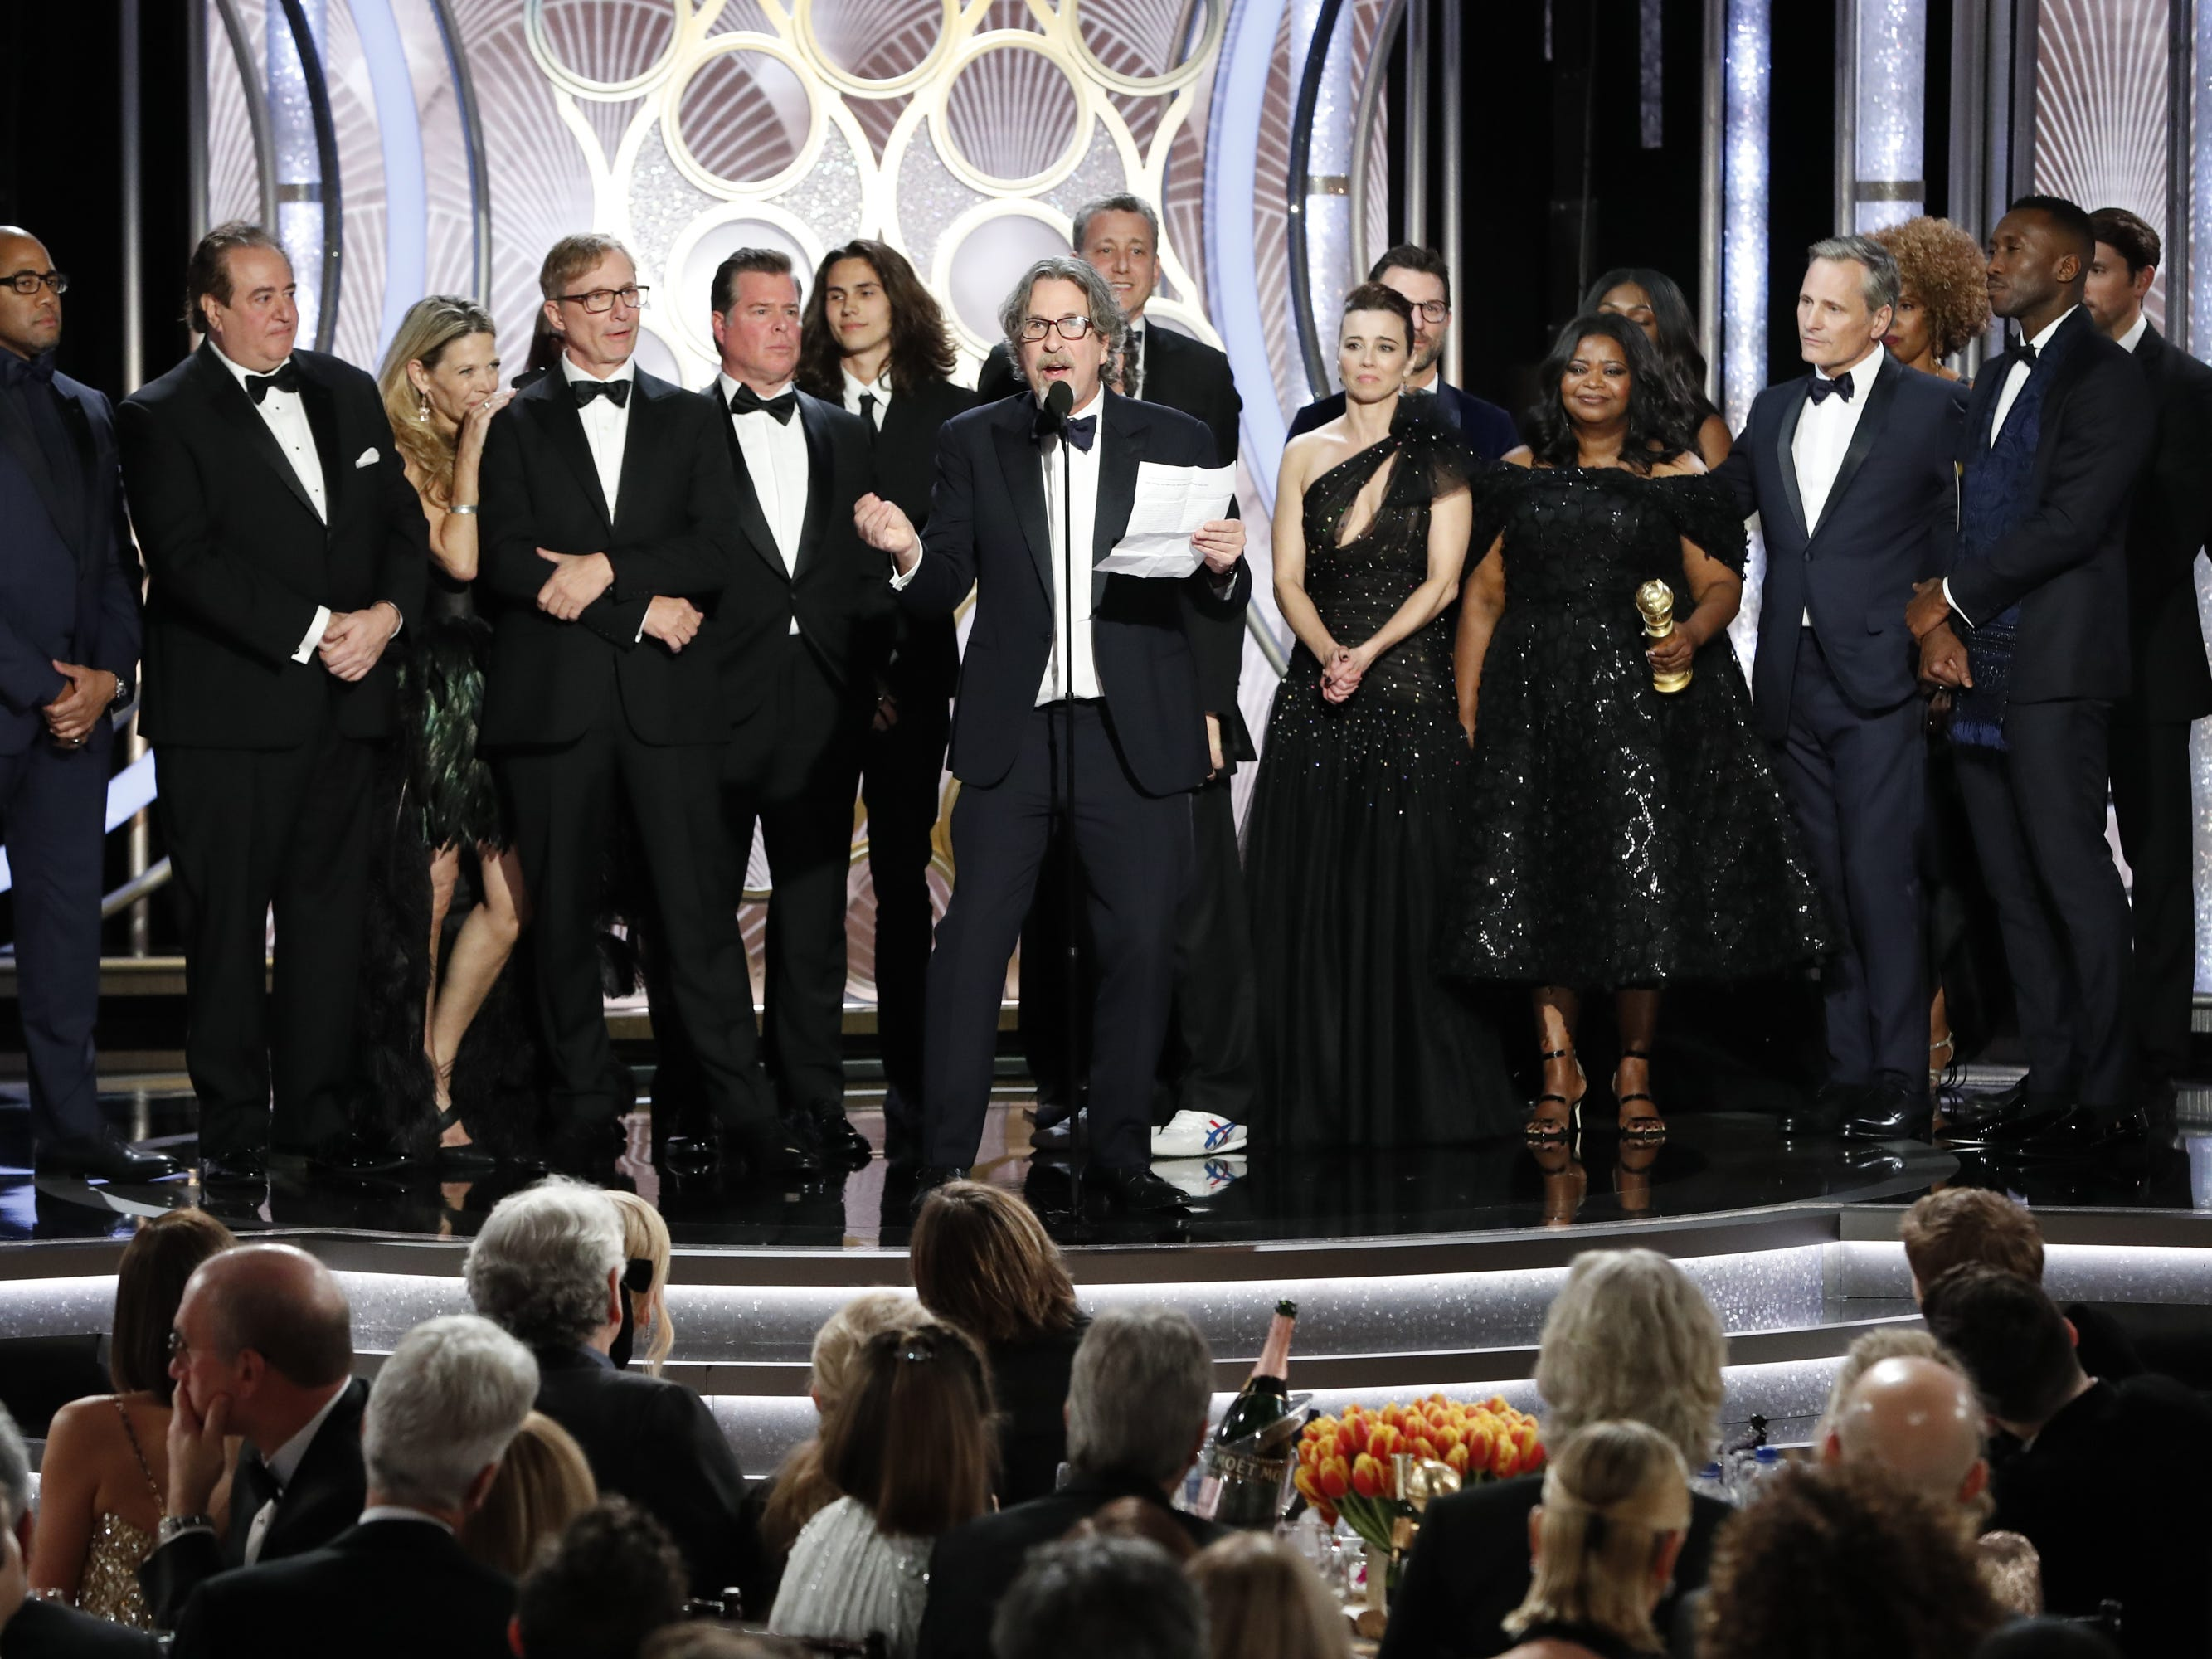 Peter Farrelly, accepts the award for Best Motion Picture, Musical or Comedy during the 76th Golden Globe Awards.